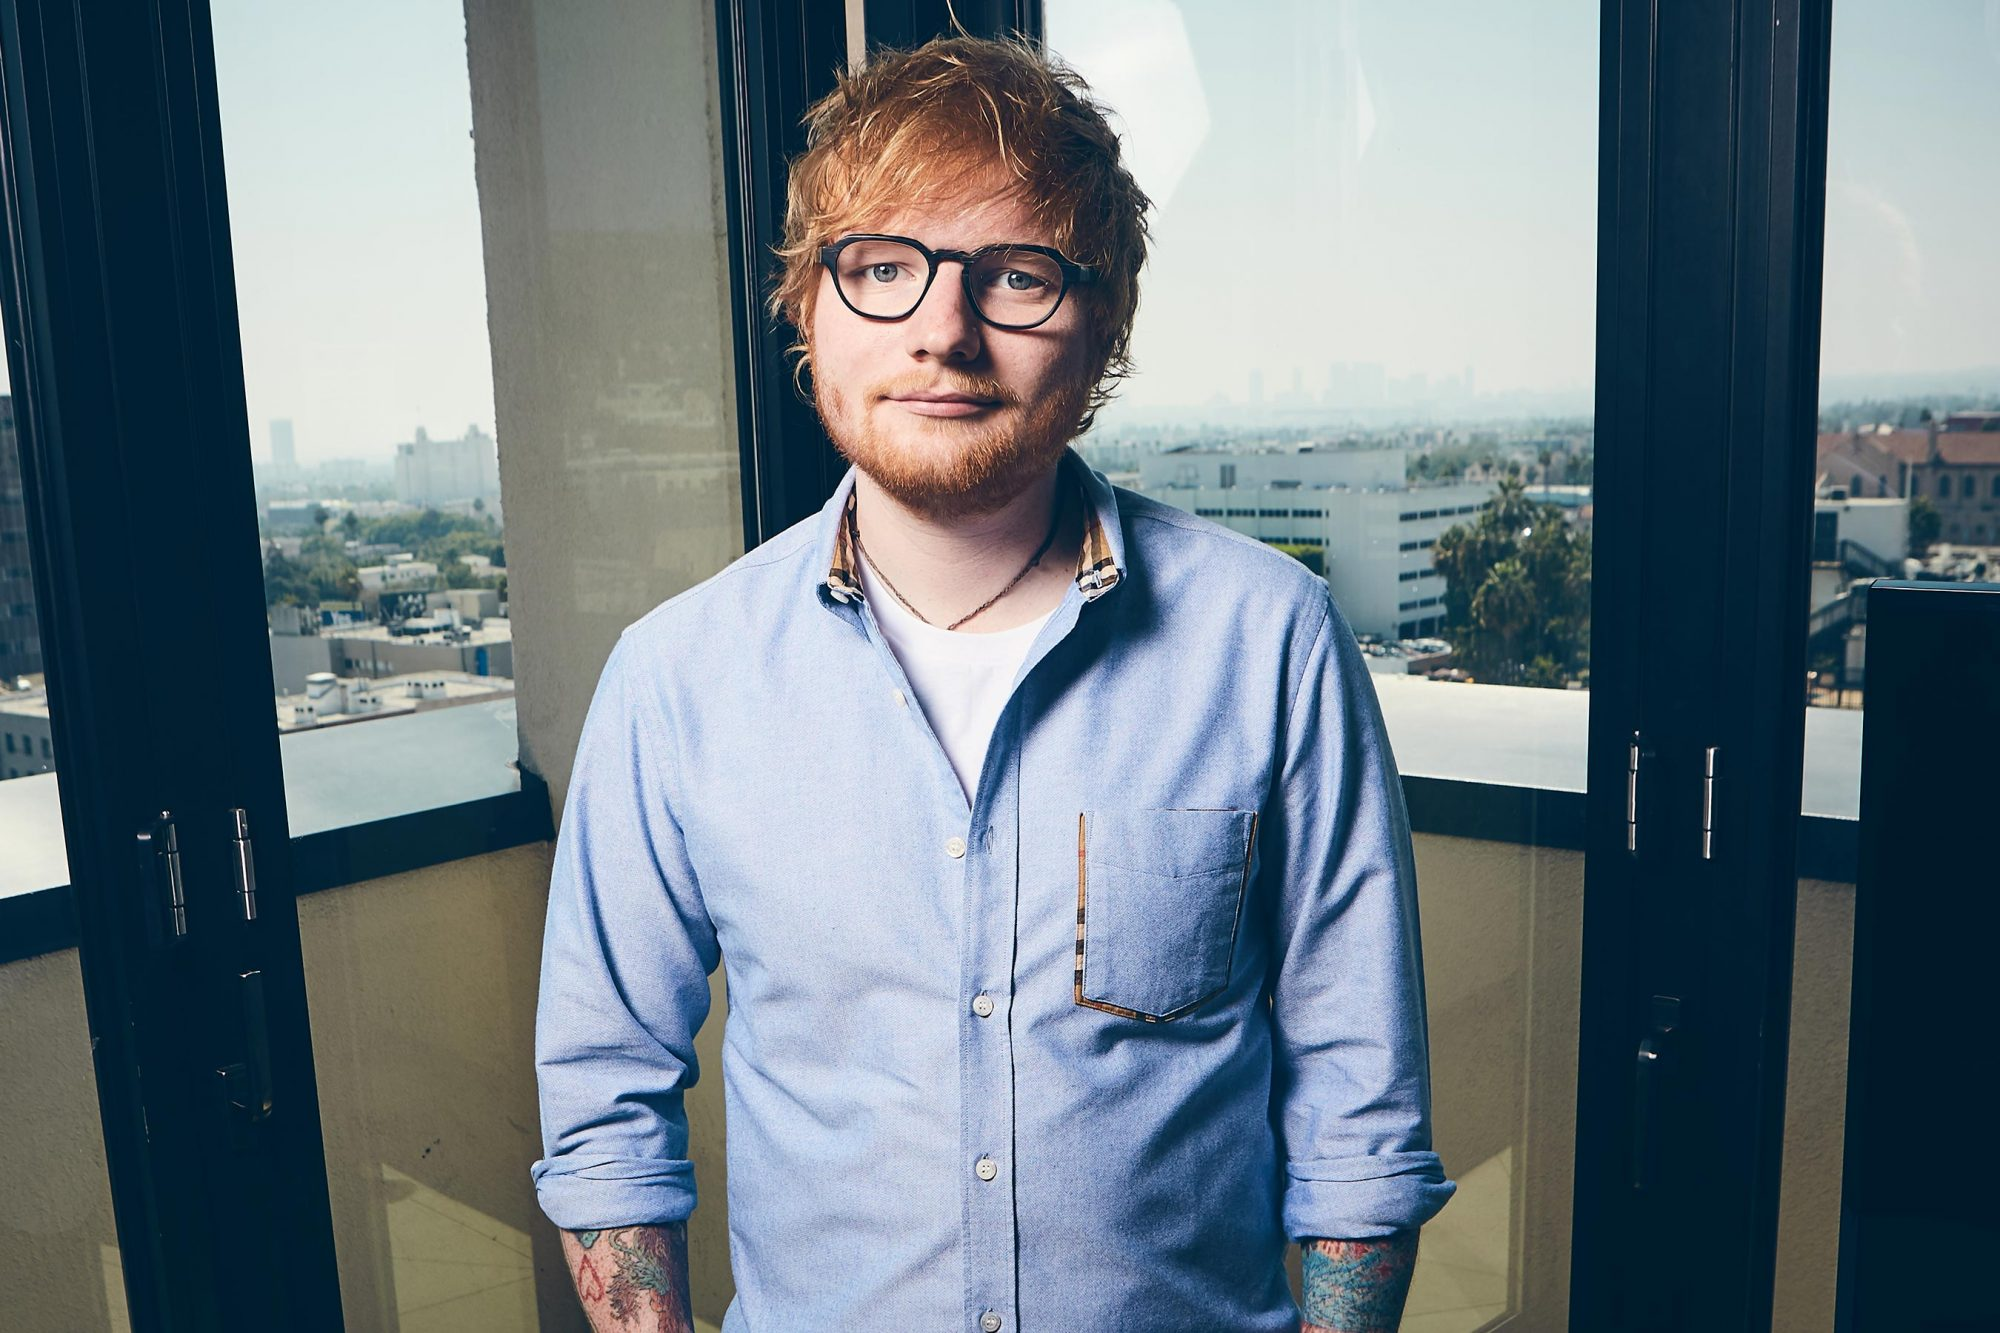 Ed Sheeran Apple Music Publicity photo CR: Koury Angelo